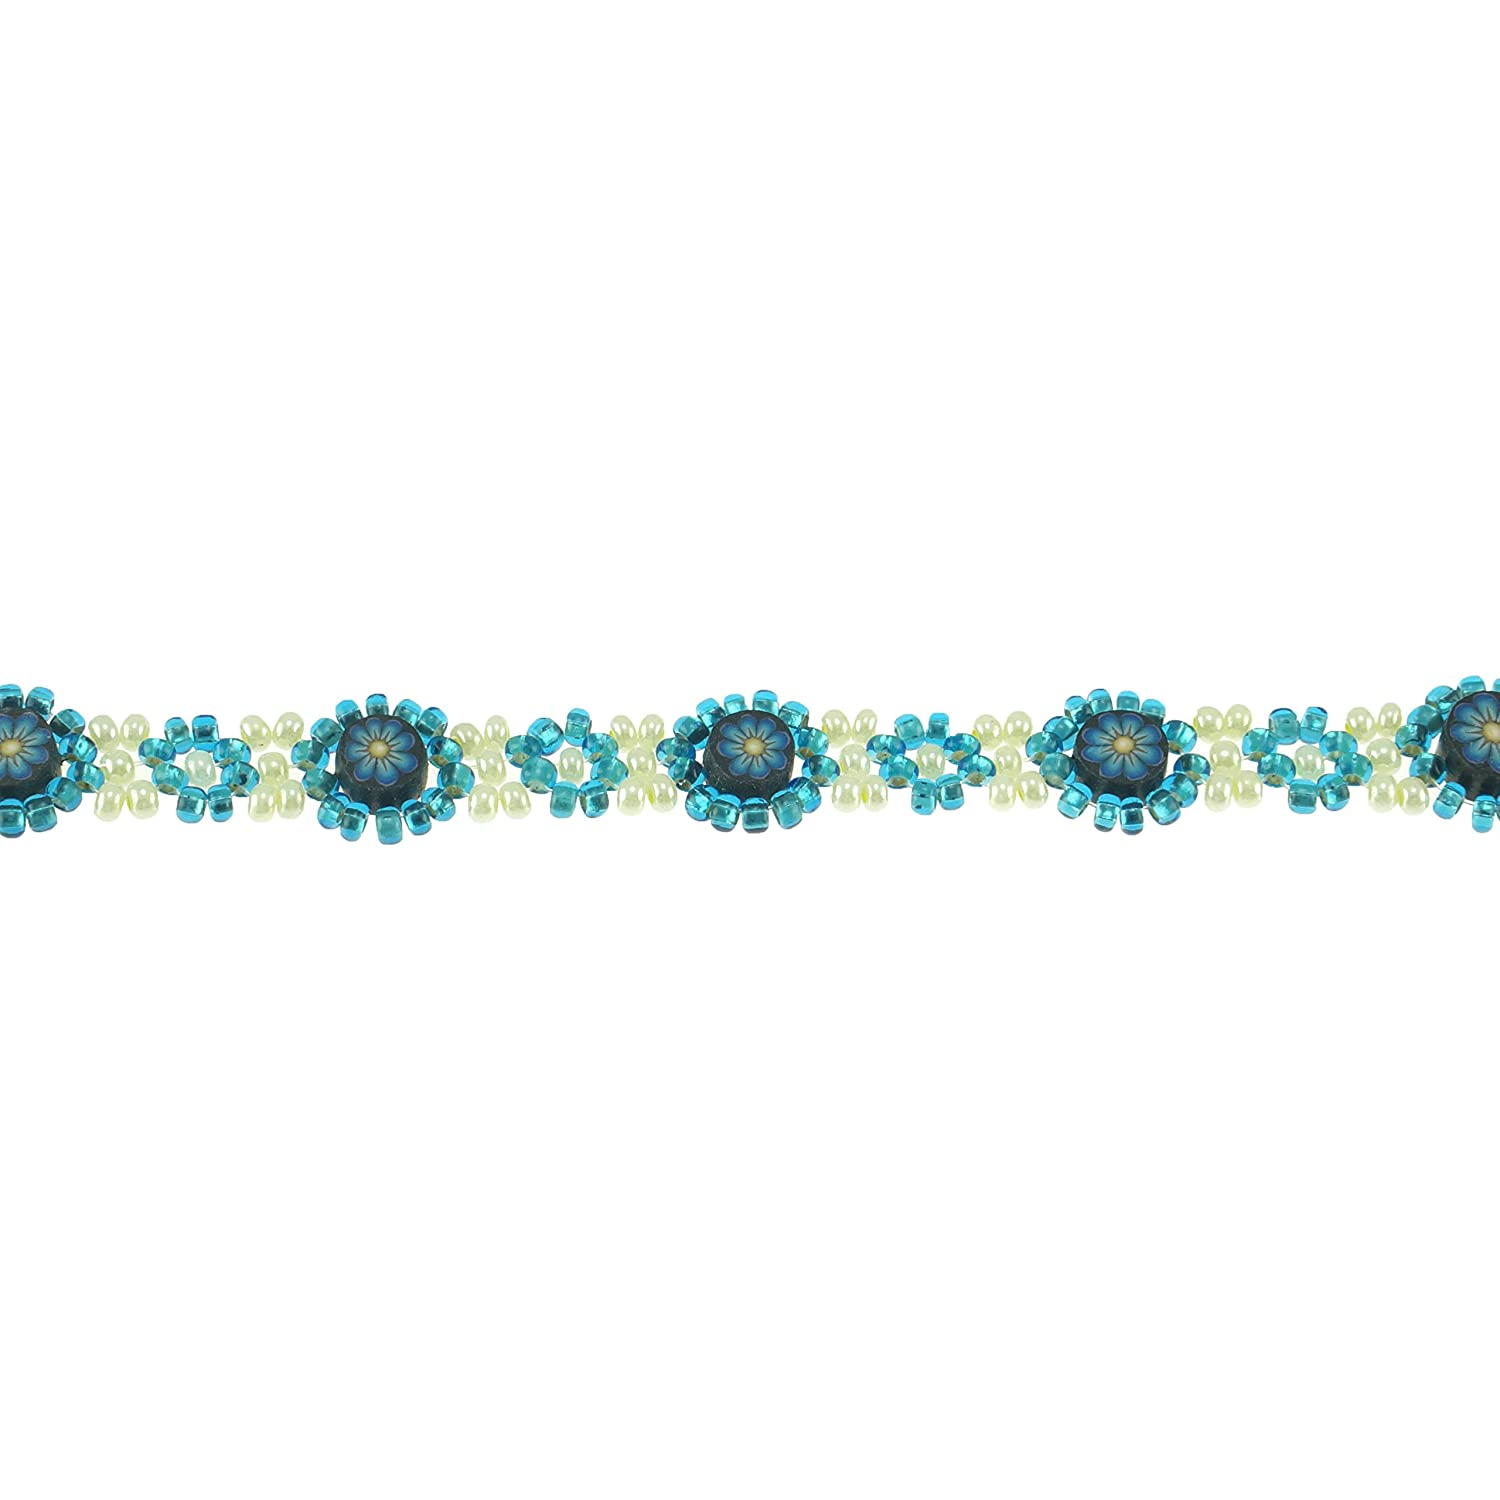 on Turquoise Blue /& Ivory Seed Beads Anklet Daisy Flower Design BlueRica Fimo Discs